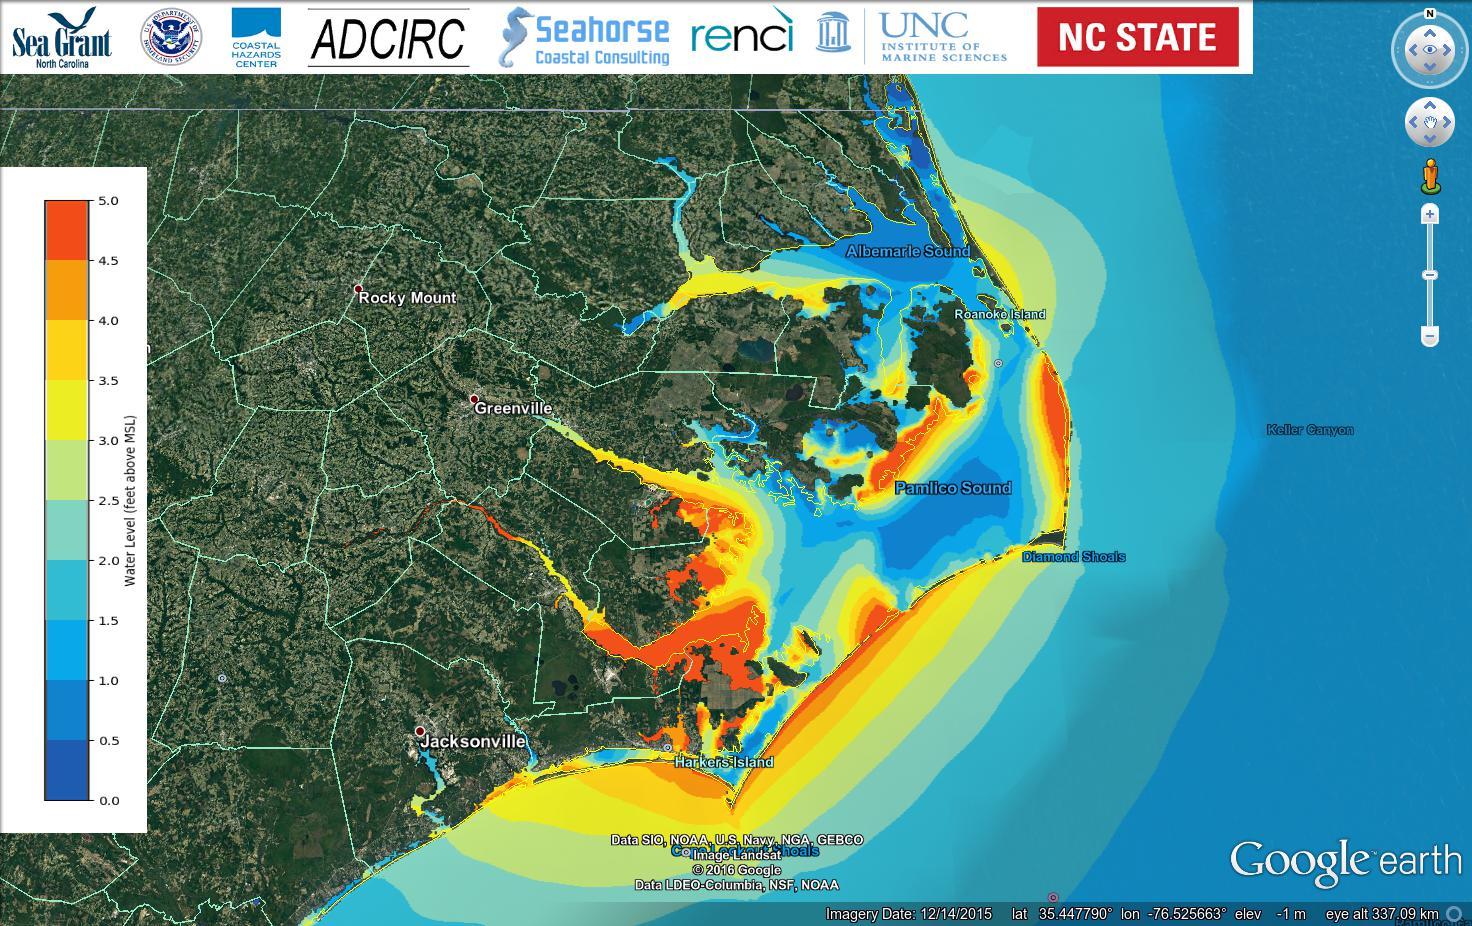 Example 1a: Maximum water levels (feet) during Hurricane Arthur (2014) advisory 12, visualized in Google Earth.